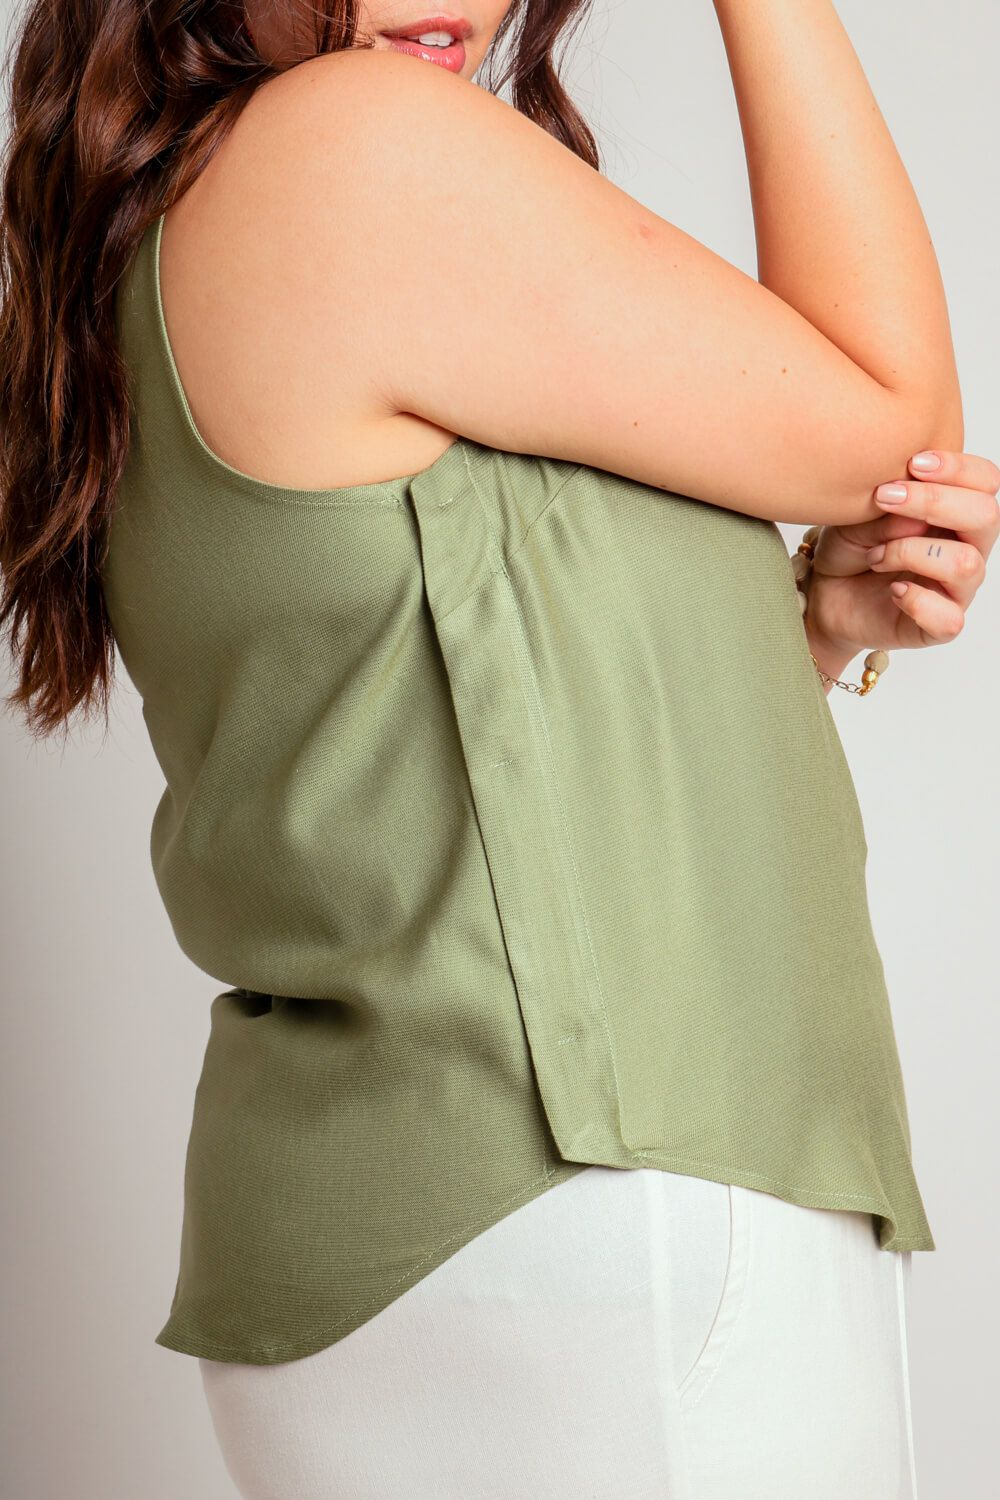 REGATA PLUS SIZE LISA MILITAR